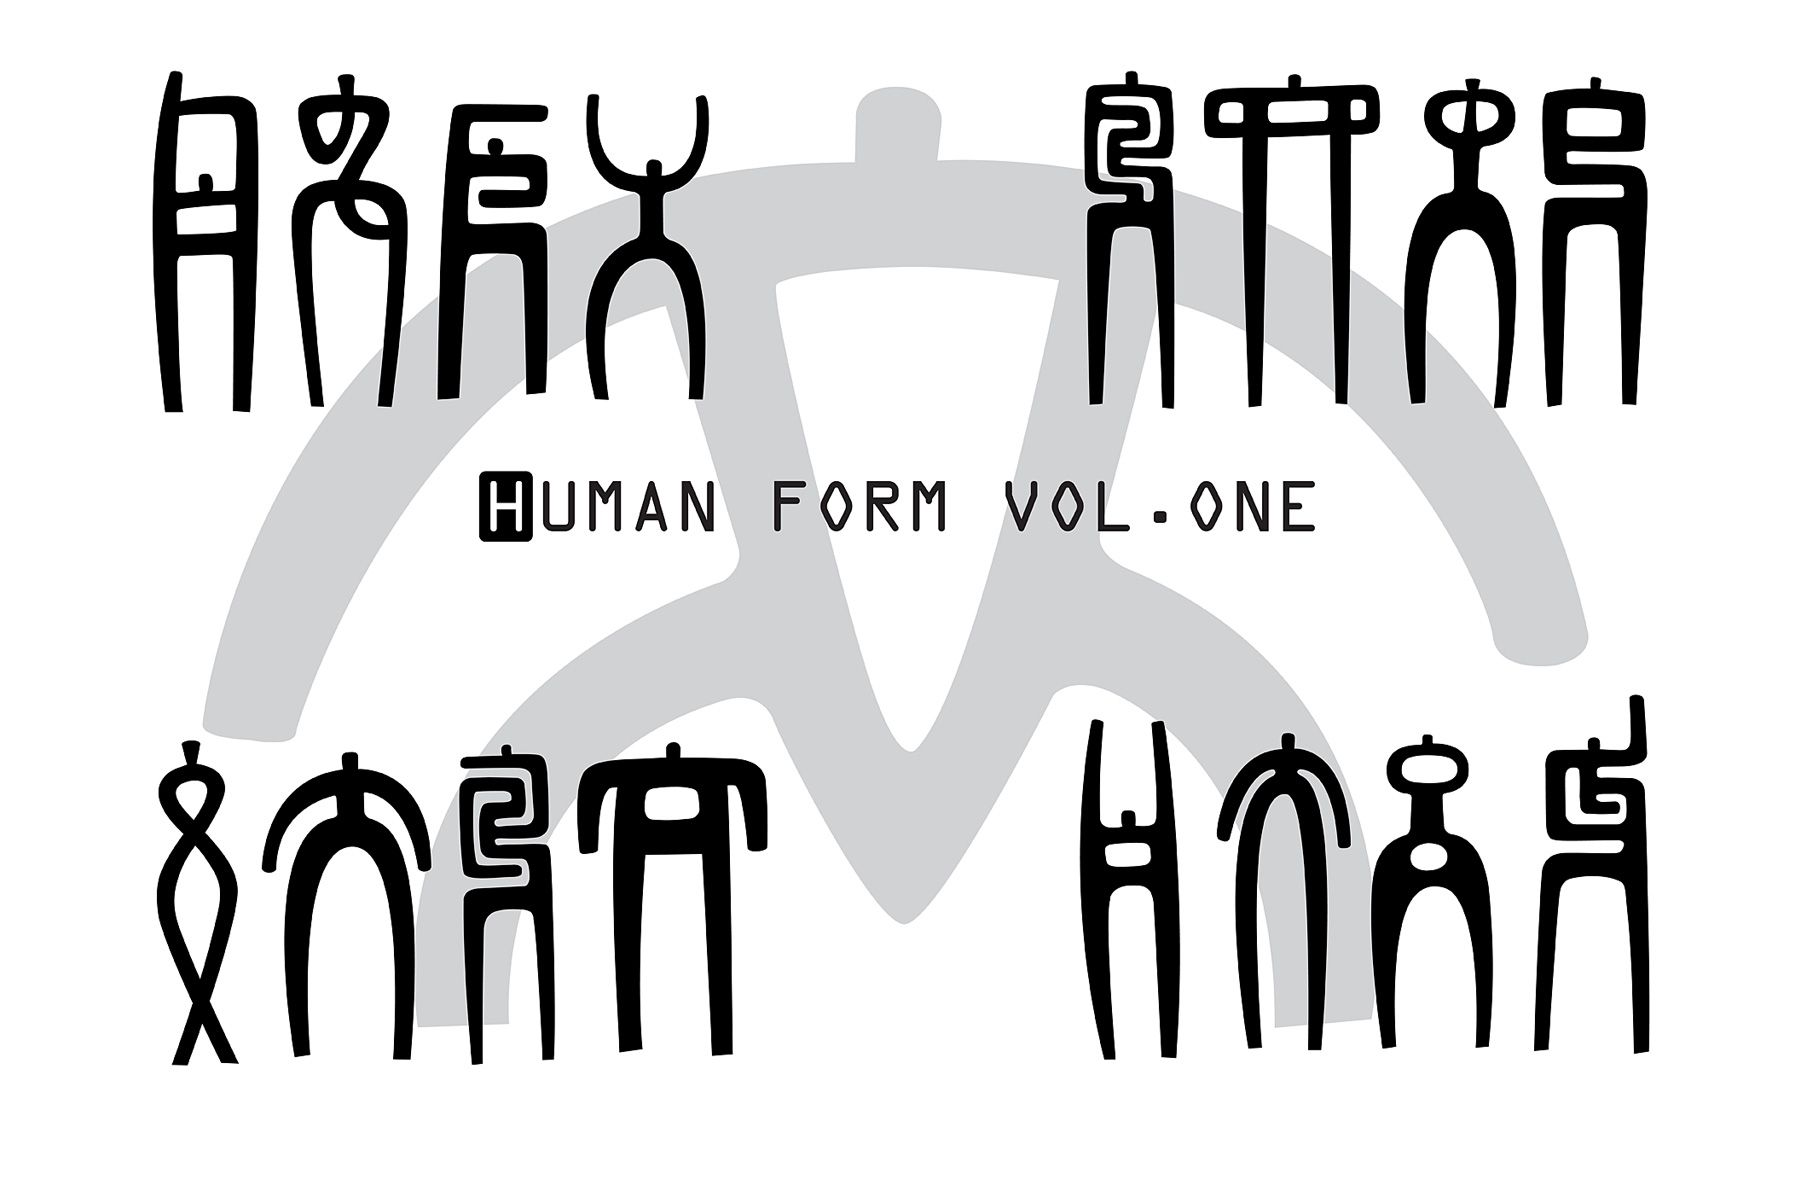 Human Form Vol. One